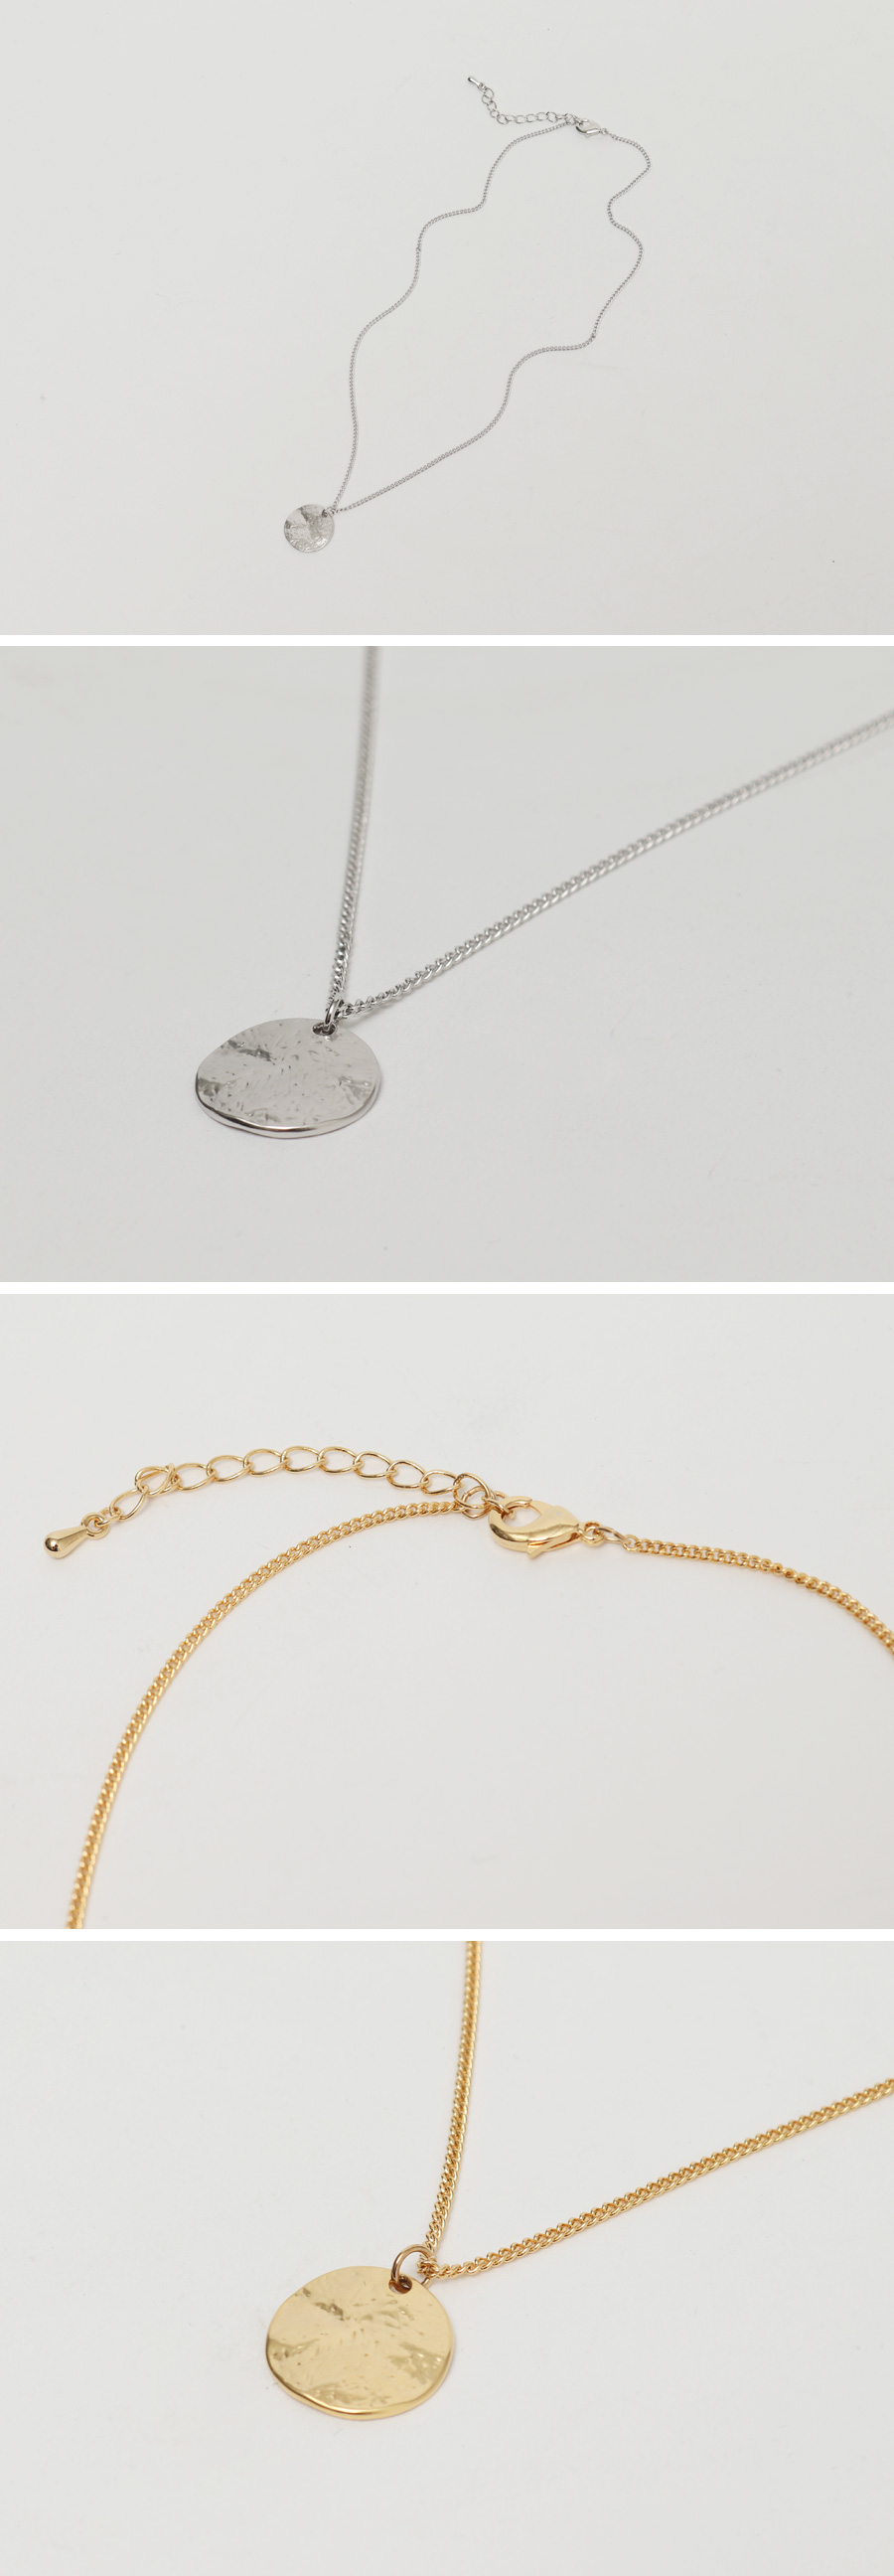 Crumple circle necklace_C